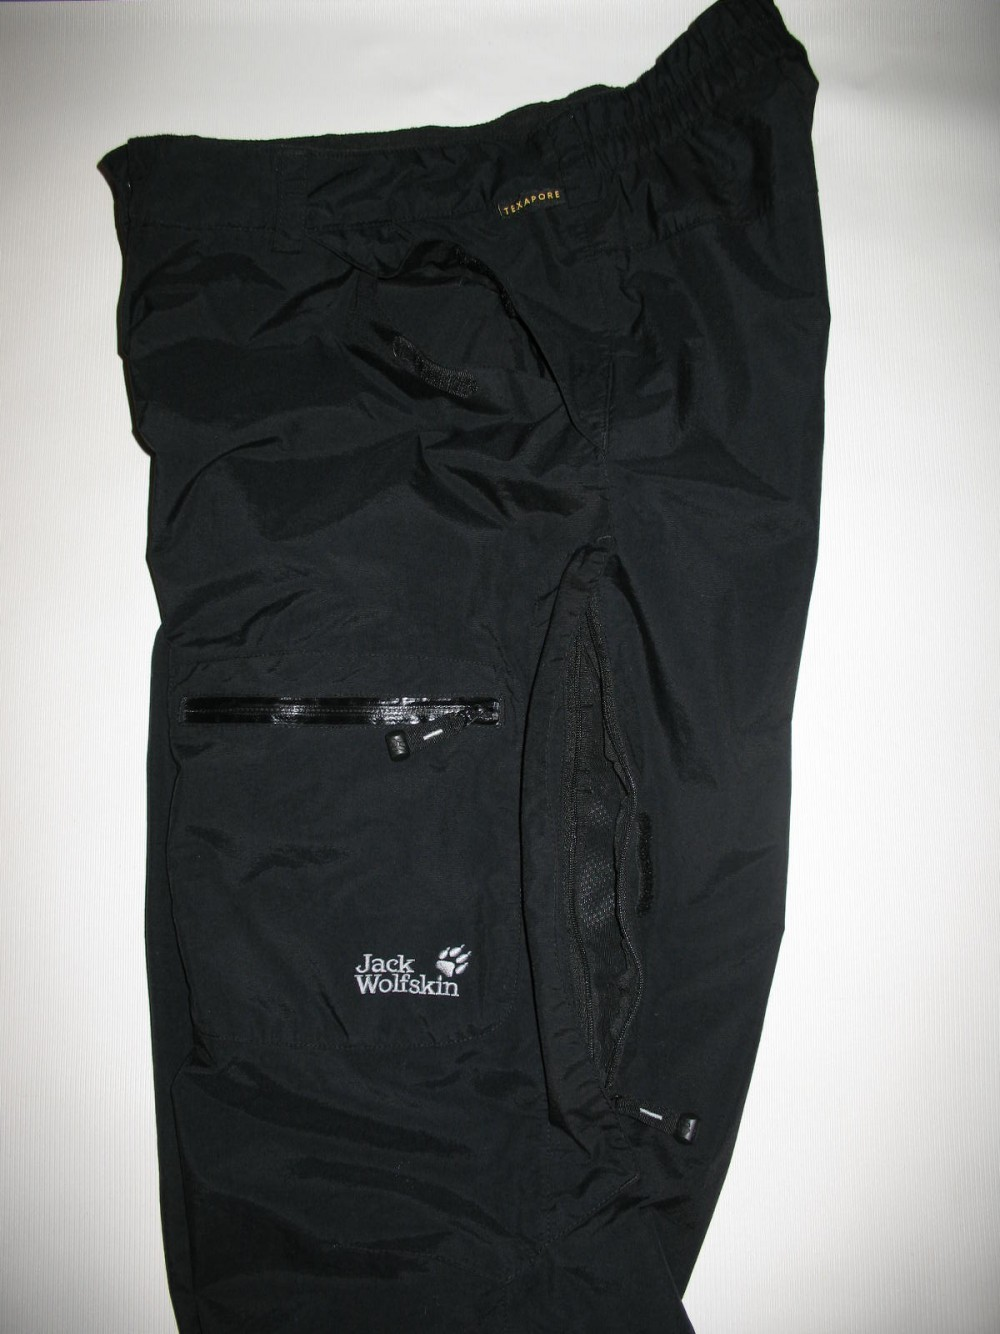 Штаны JACK WOLFSKIN texapore pants lady (размер L/M) - 4